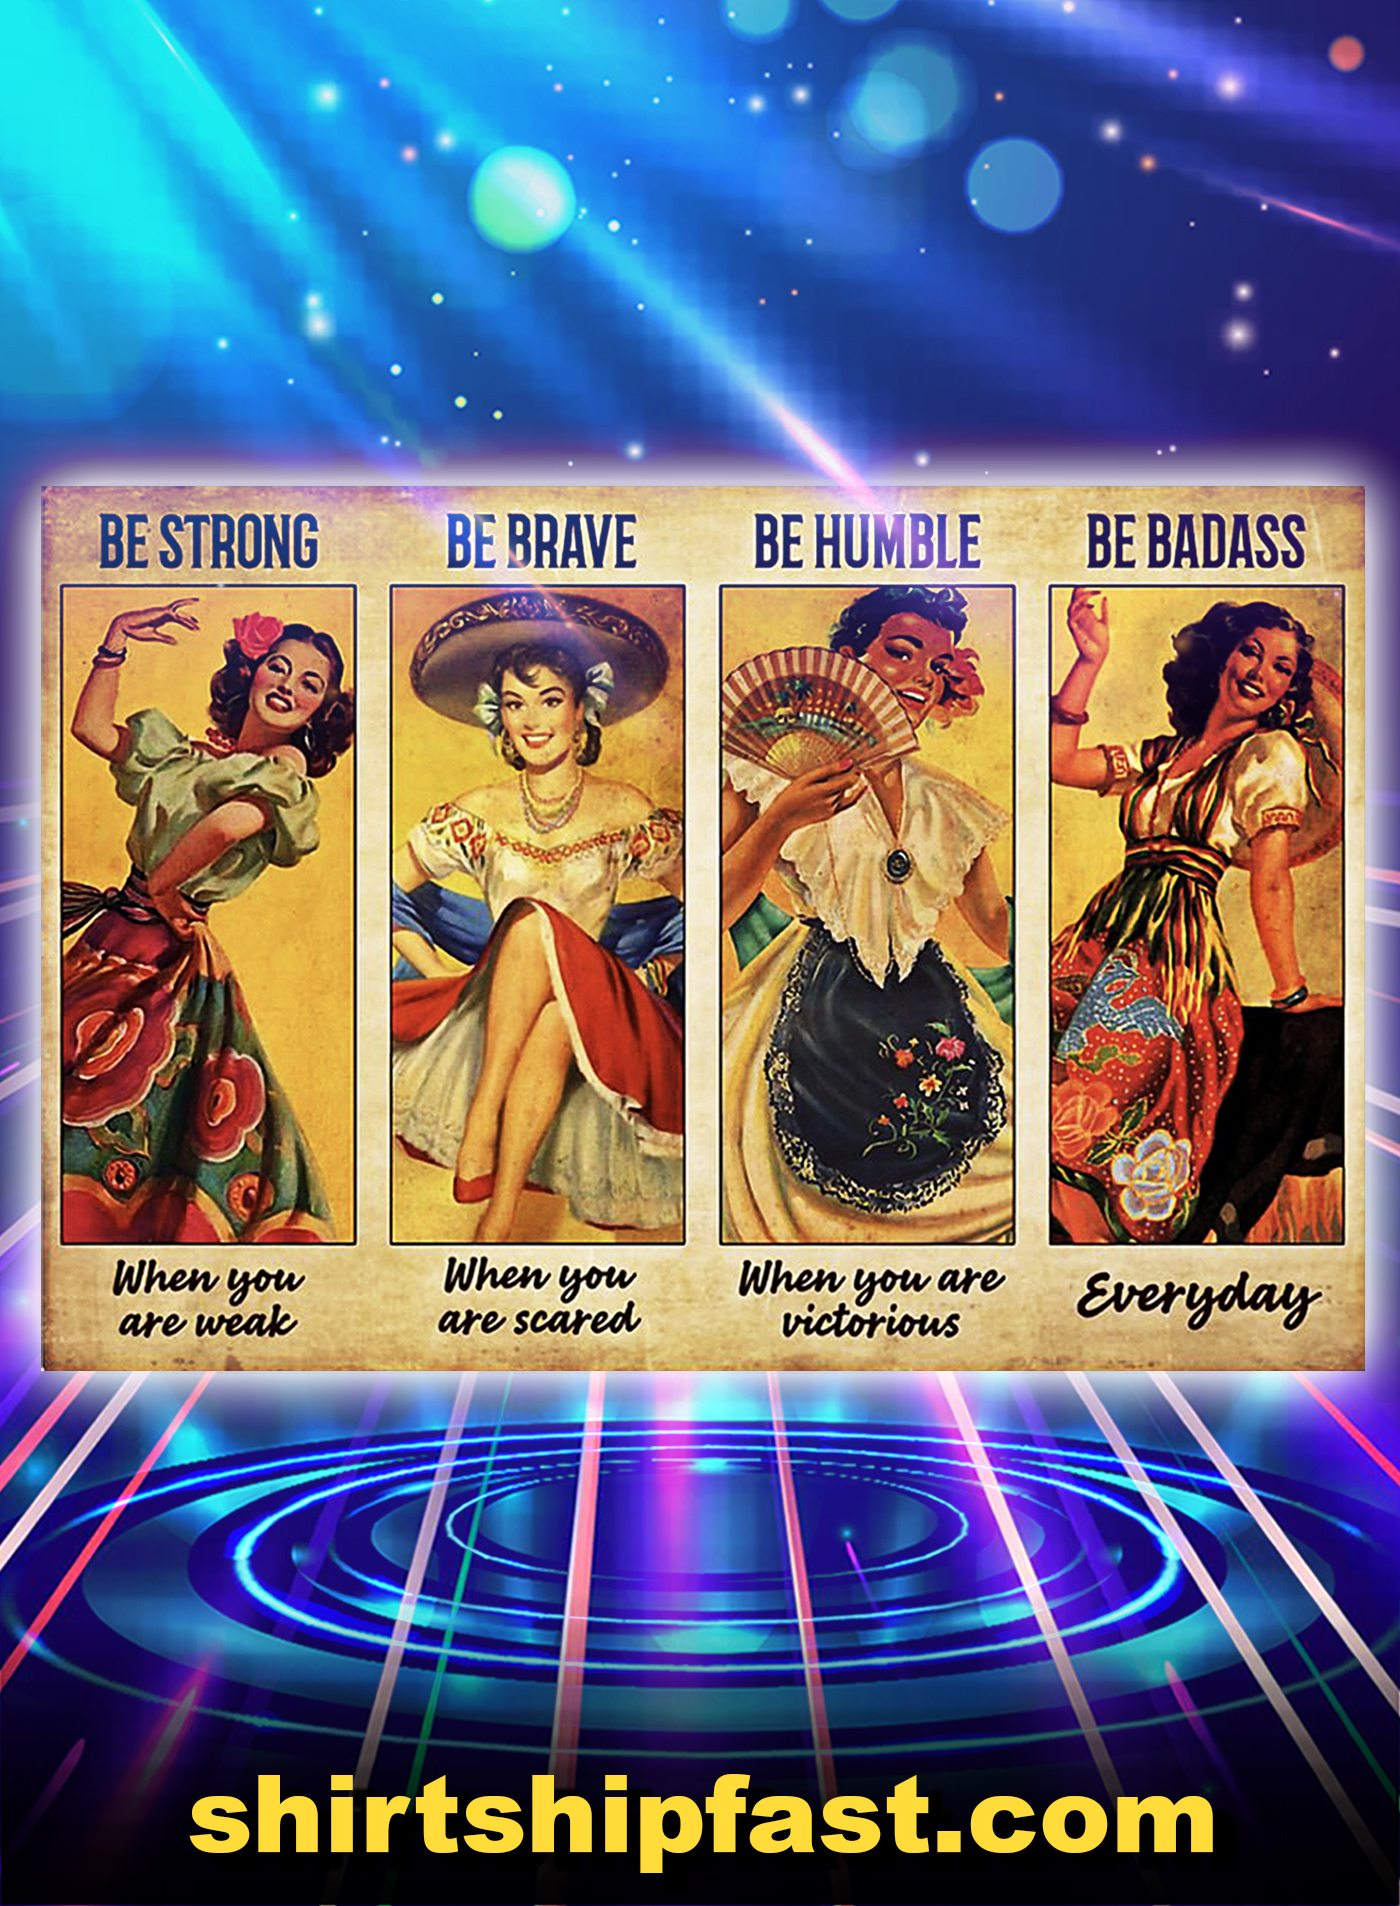 Women Mexican Dancing be strong be brave be humble be badass poster - A1